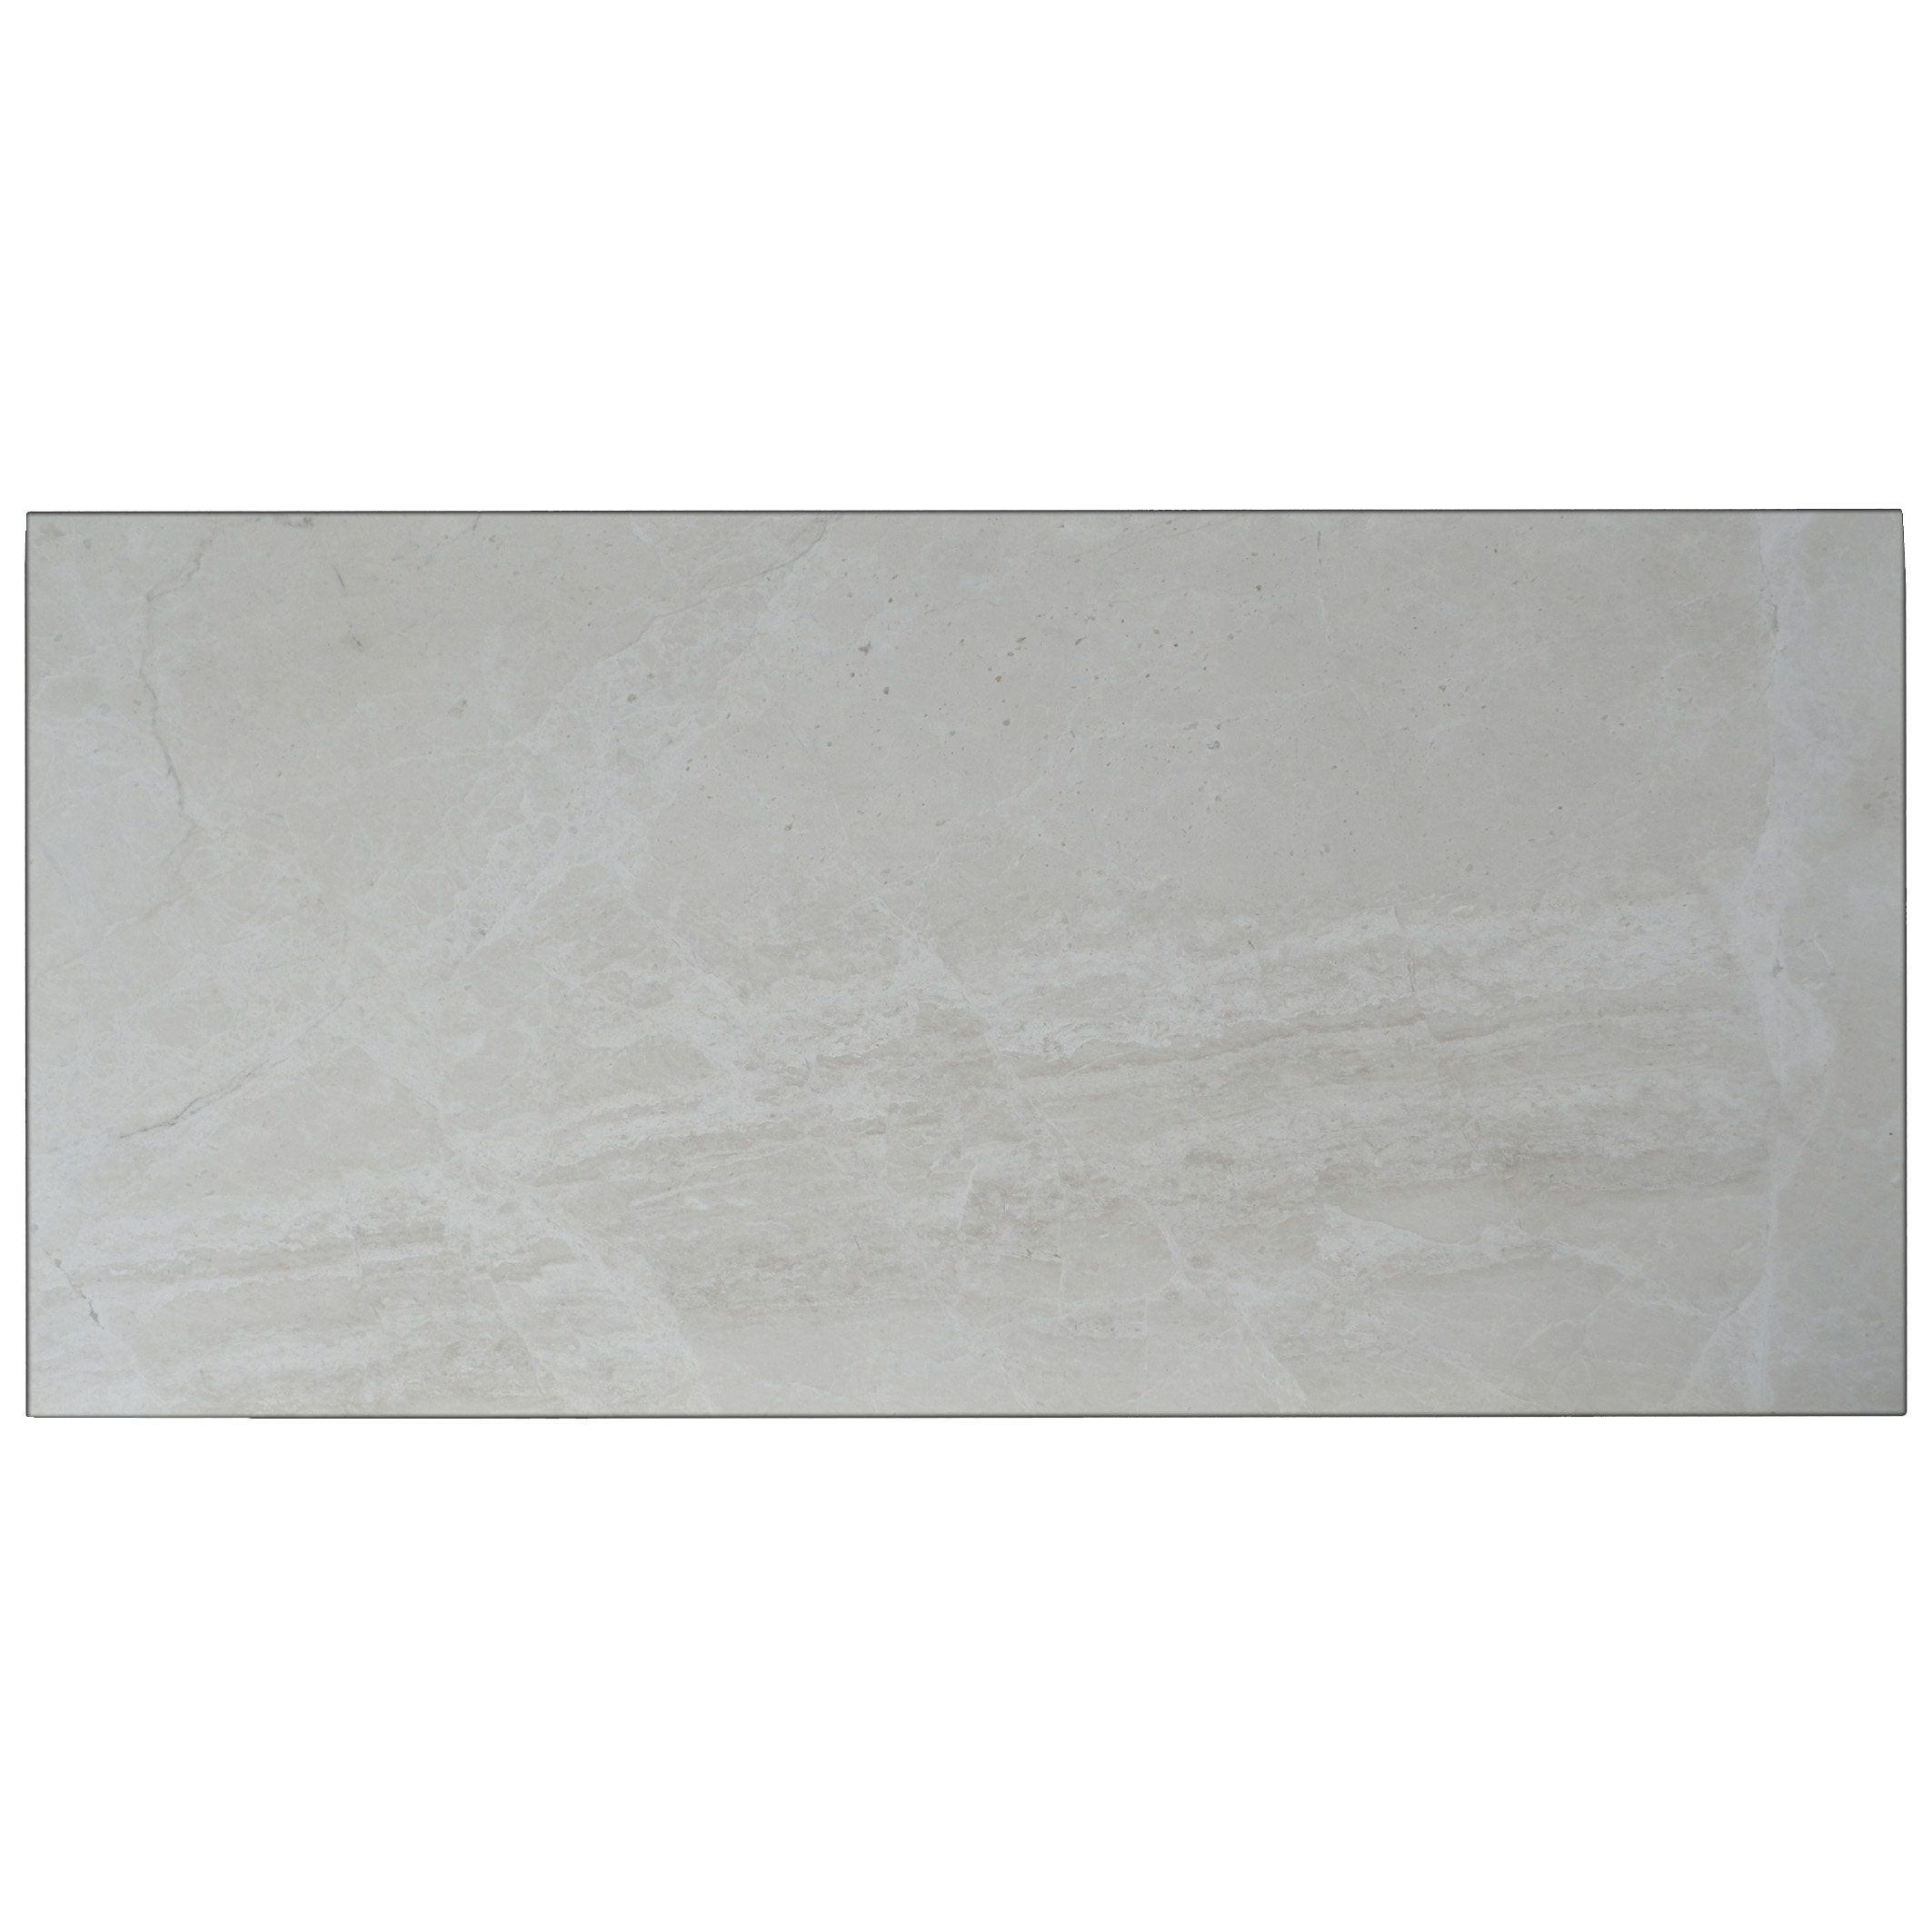 Snow White Polished Marble Tiles 18x36-marble sale-Atlantic Stone Source